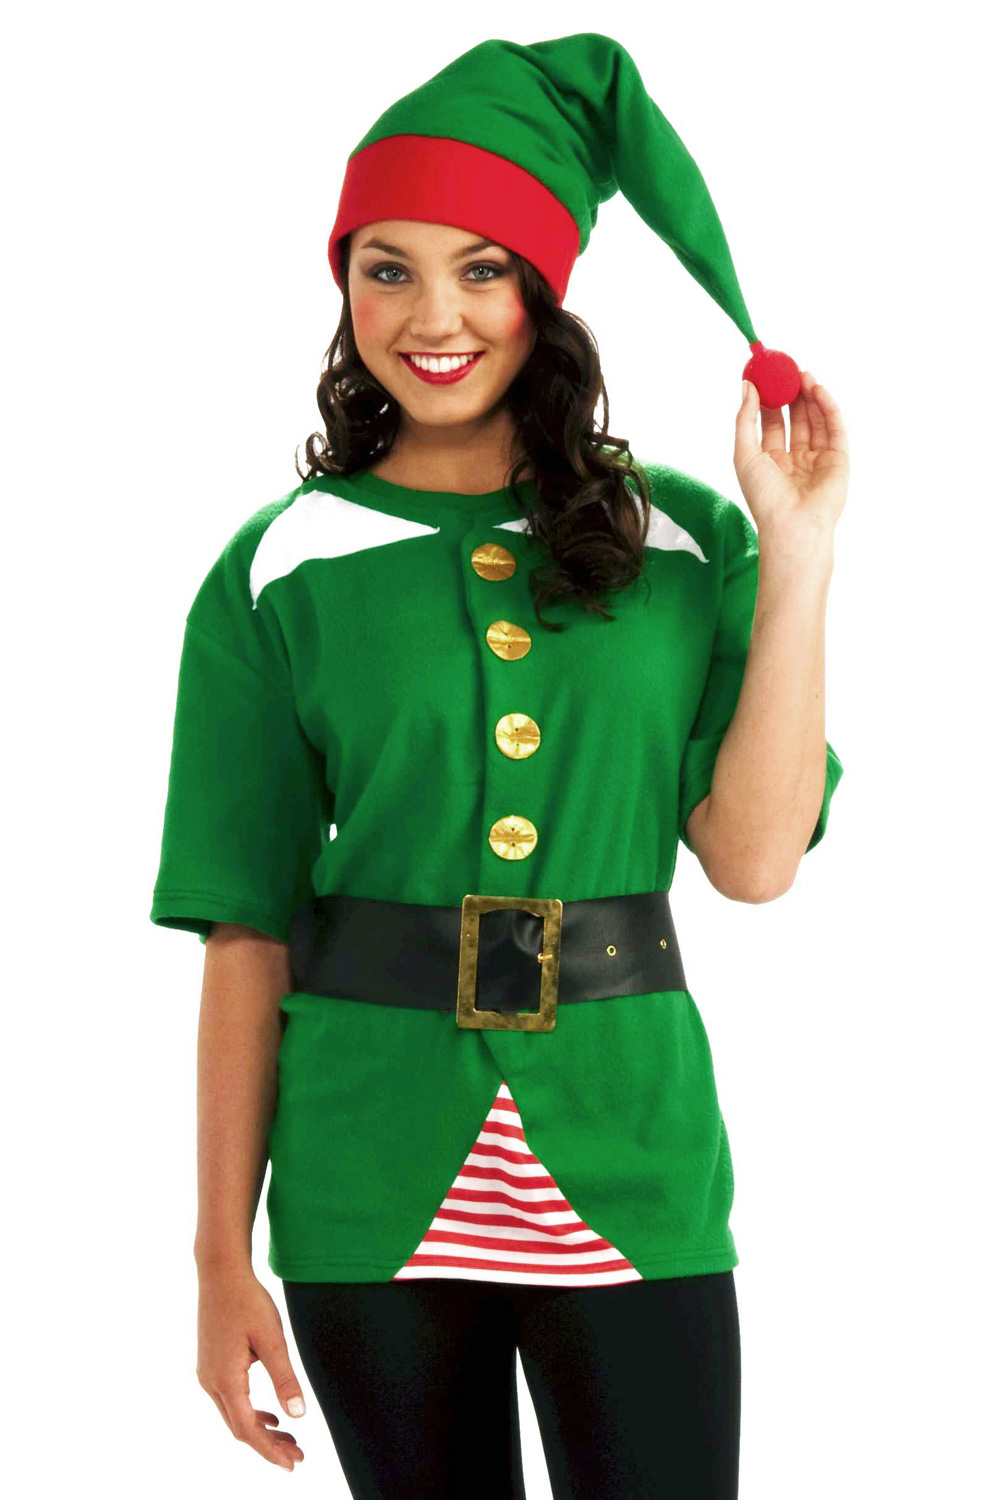 Details about brand new christmas santa jolly elf costume kit